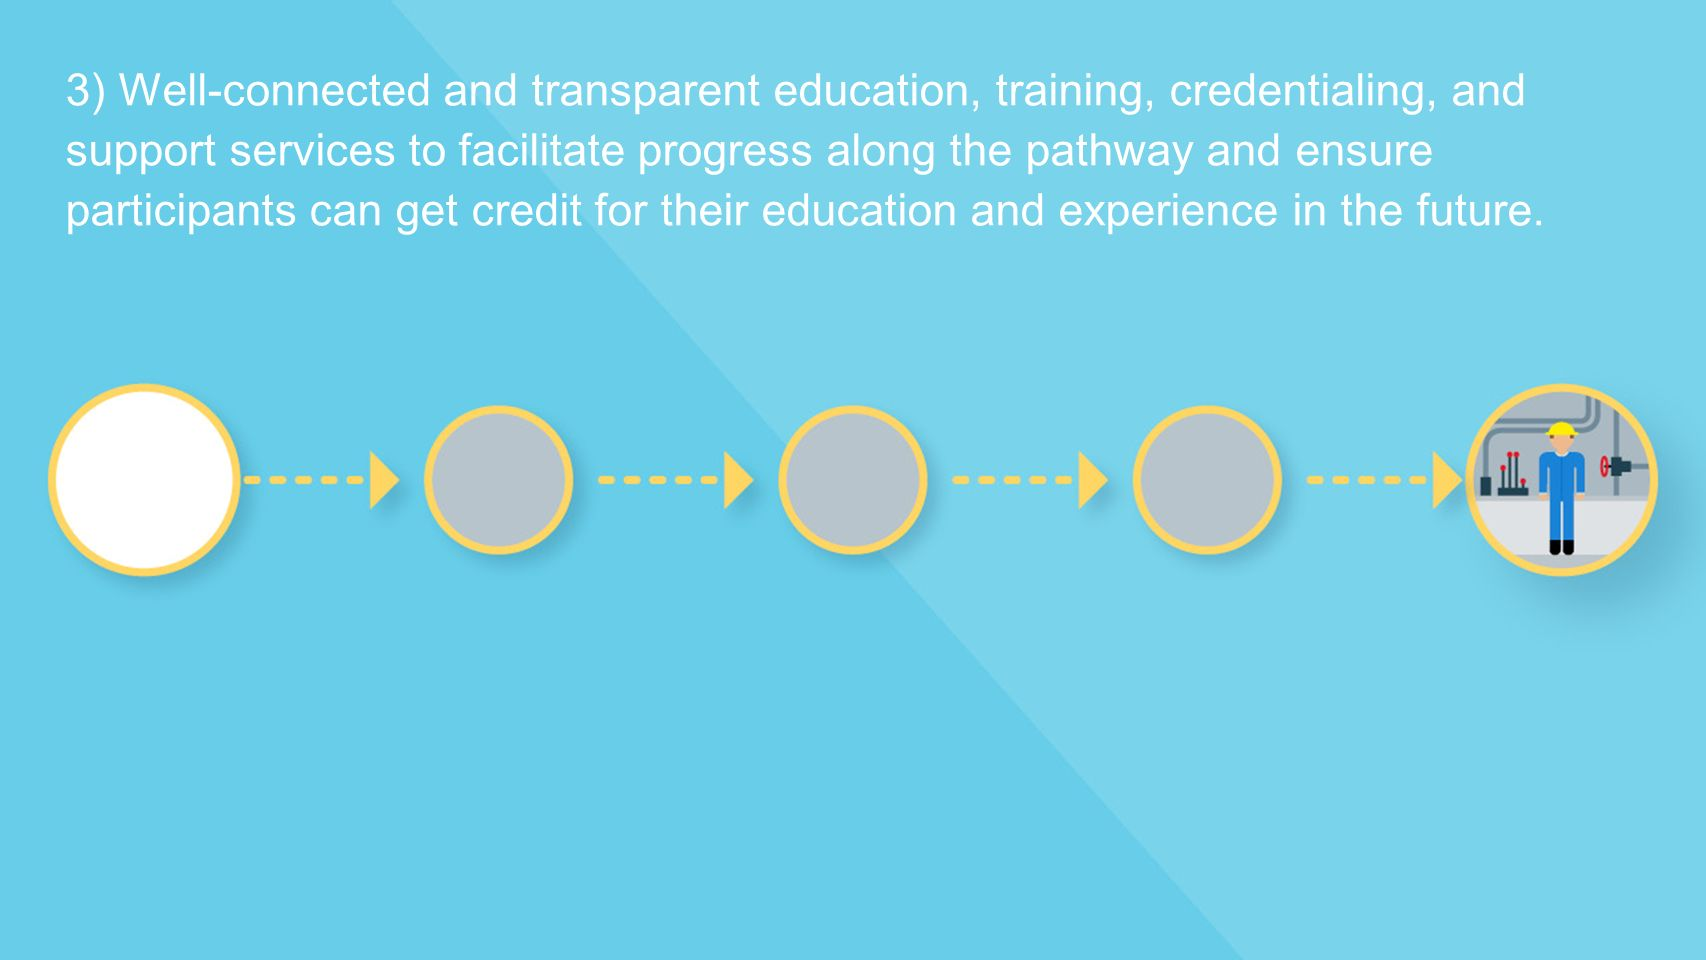 3) Well-connected and transparent education, training, credentialing, and support services to facilitate progress along the pathway and ensure participants can get credit for their education and experience in the future.